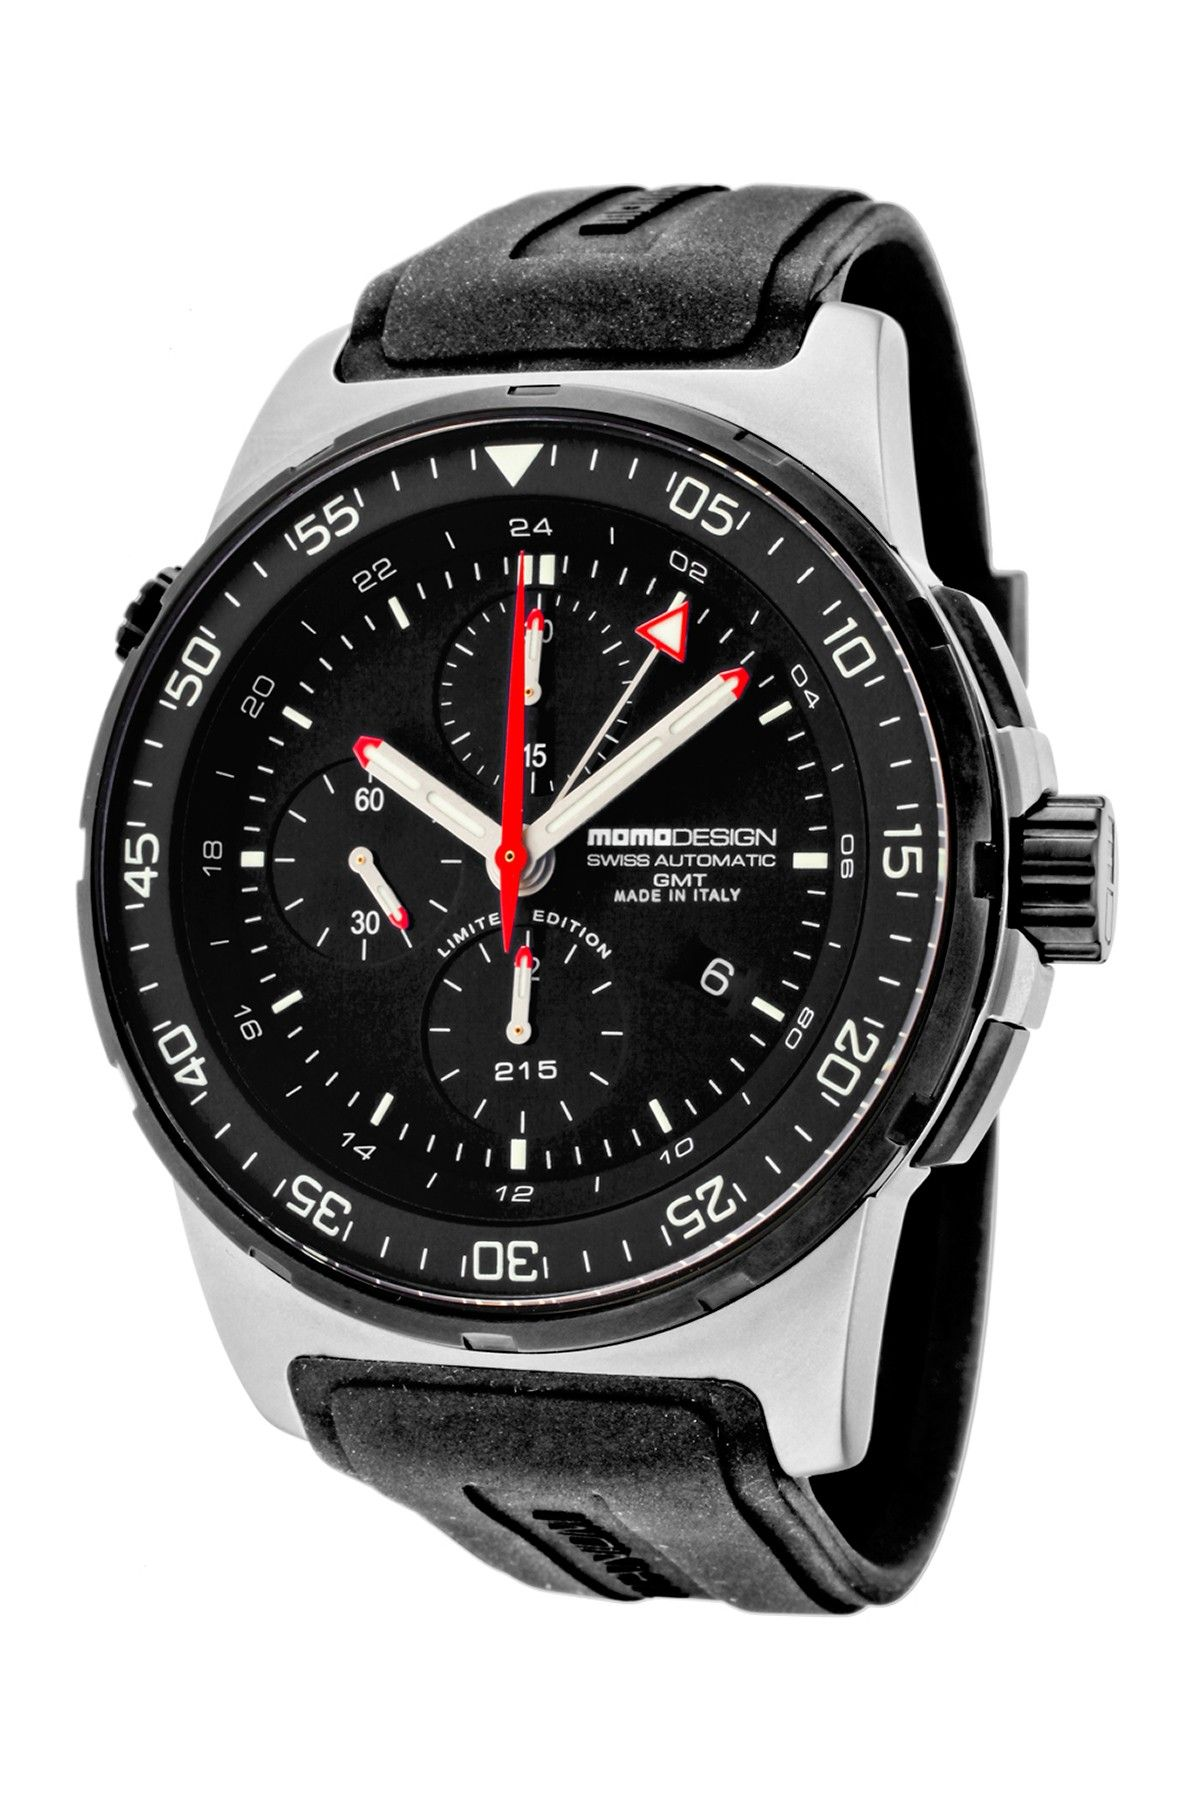 9dd1f896cd3  Momo Design Men s Pilot XL Limited Edition  Chronograph  Watch Acessórios  Masculinos